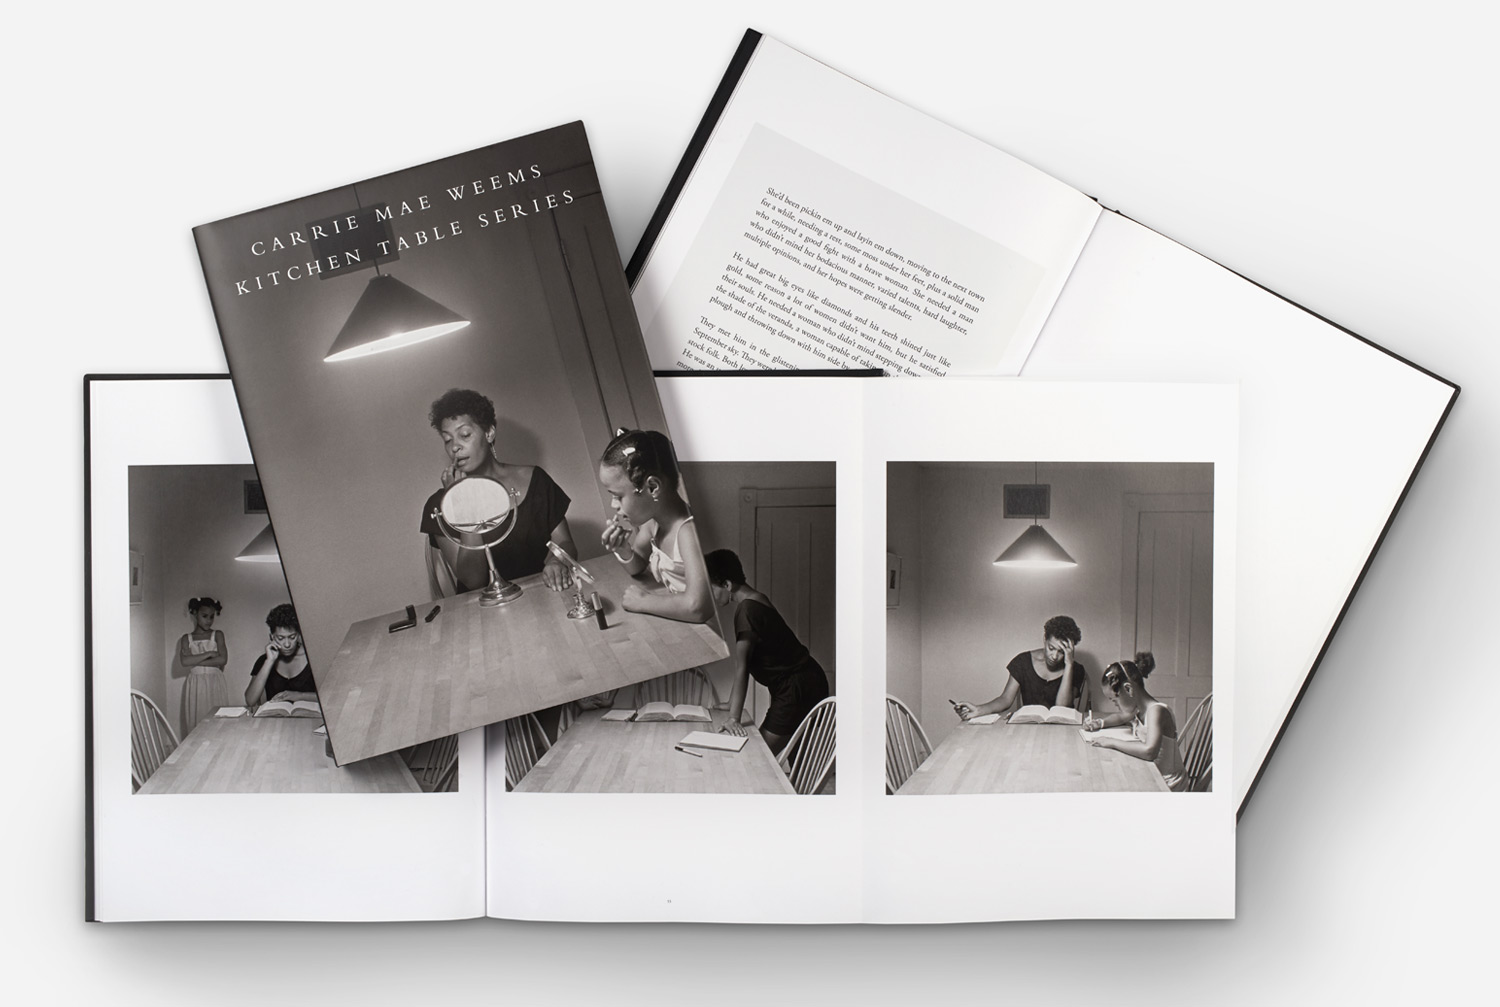 Carrie Mae Weems Kitchen Table Series Matsumoto Incorporated